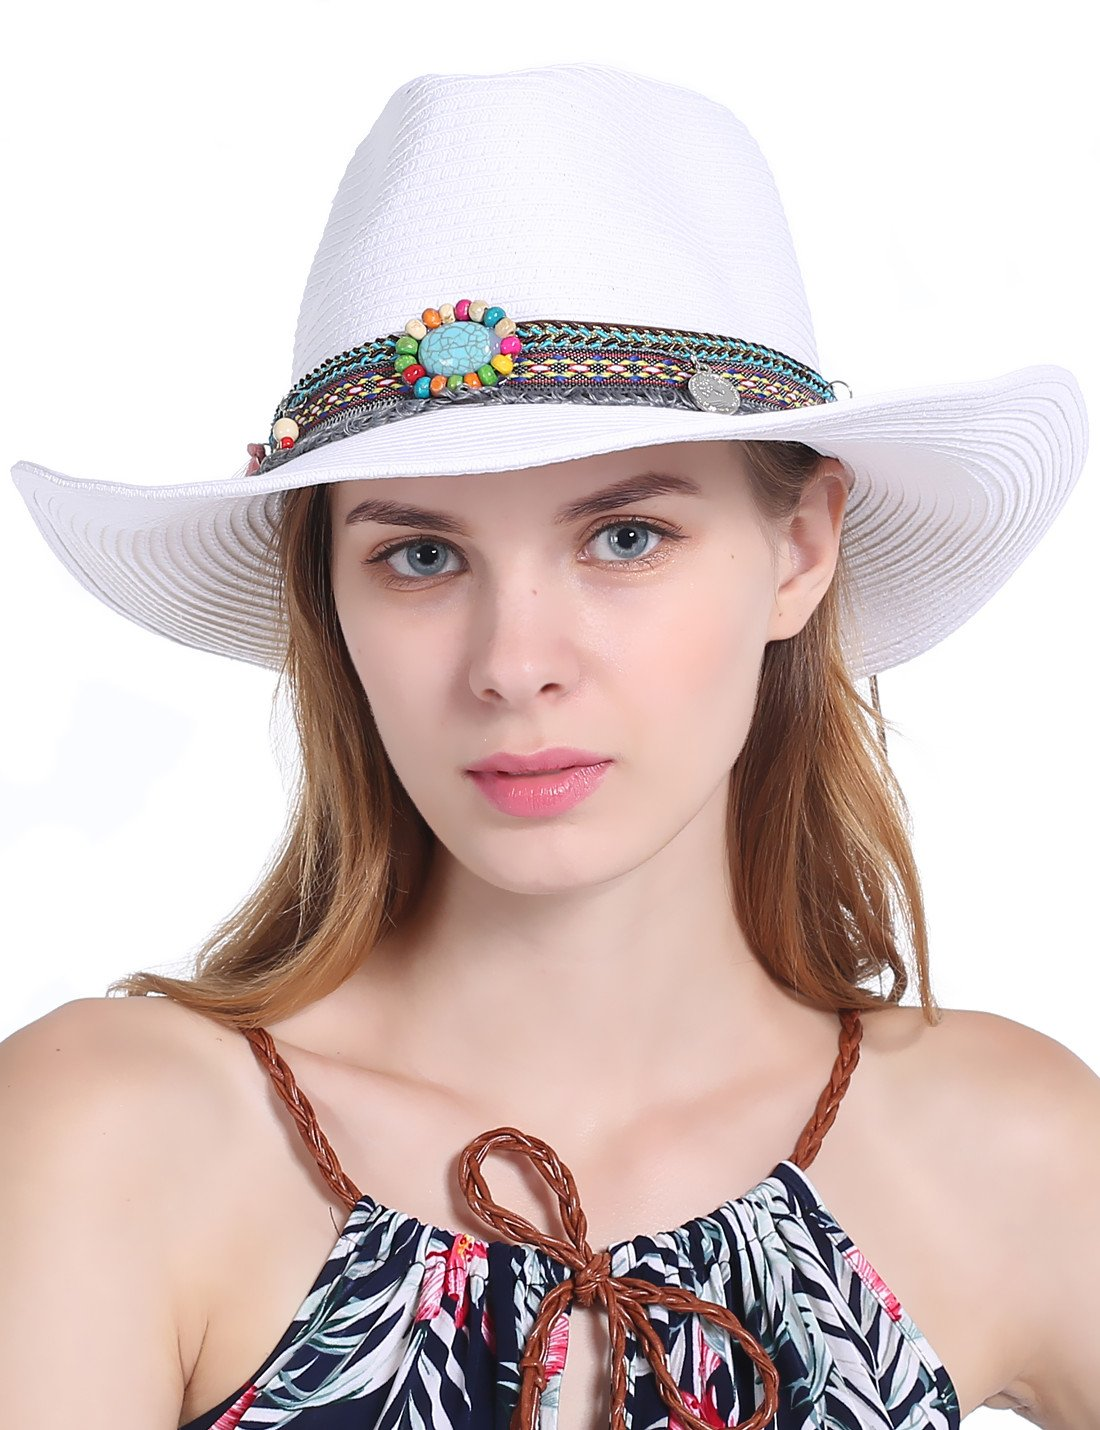 Vintage Unisex Adults Western Cowboy Hat with Rhinestone Summer Straw Sun Hats (White)